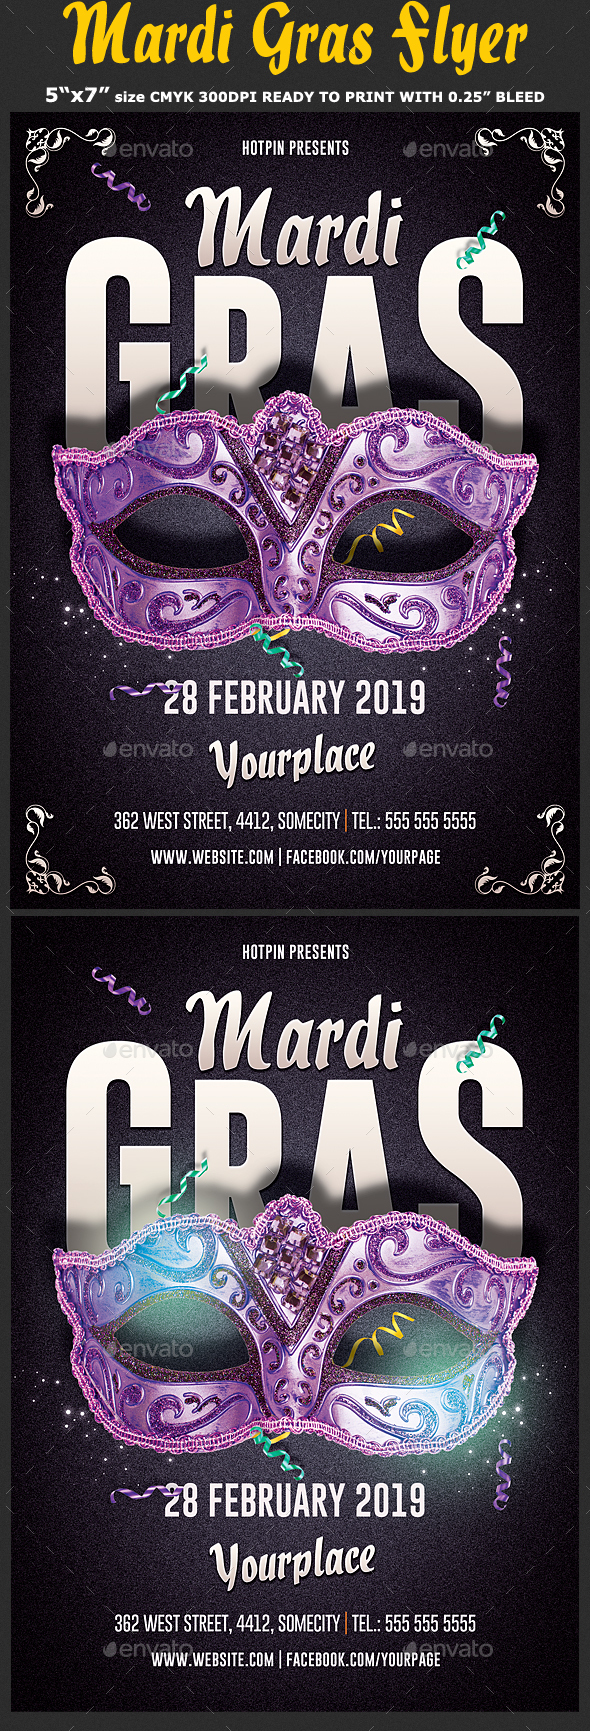 Mardi Gras Flyer Template - Clubs & Parties Events